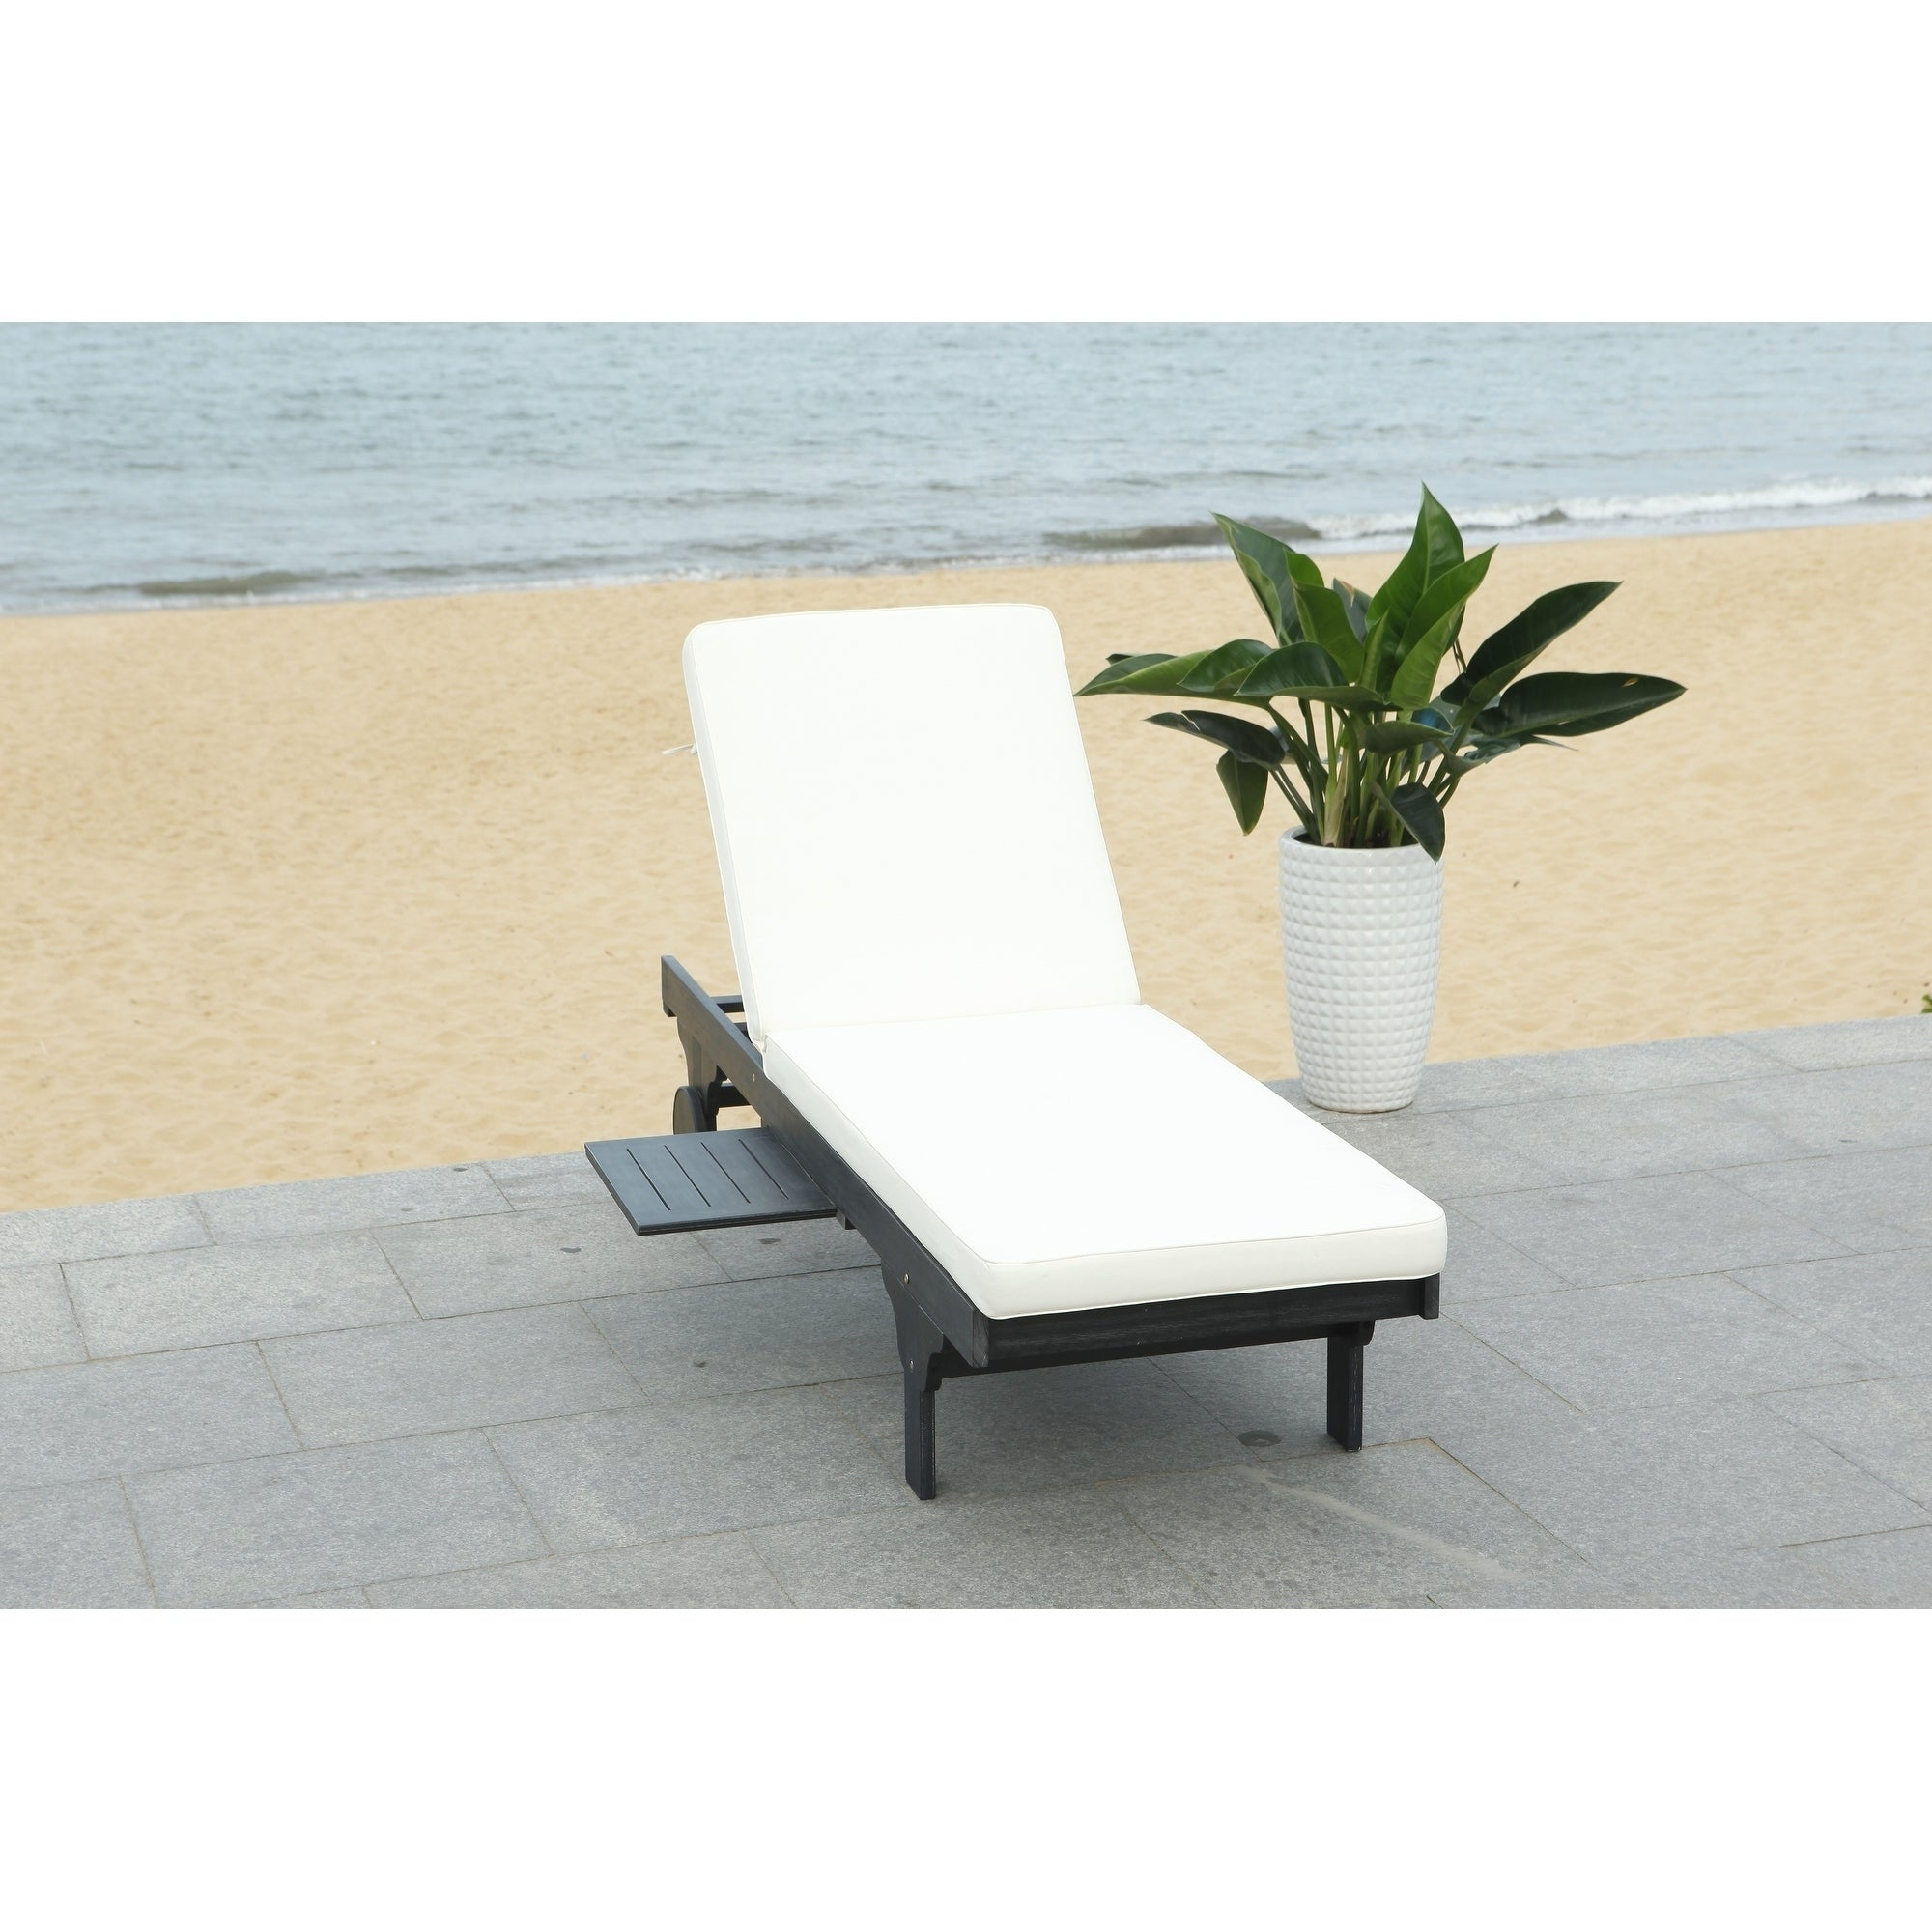 "Outdoor Living Manteca Dark Slate Lounge Chairs With Fashionable Safavieh Outdoor Living Newport Black/ White Cart Wheel Adjustable Chaise  Lounge Chair – 27.6"" X 78.7"" X  (View 19 of 25)"